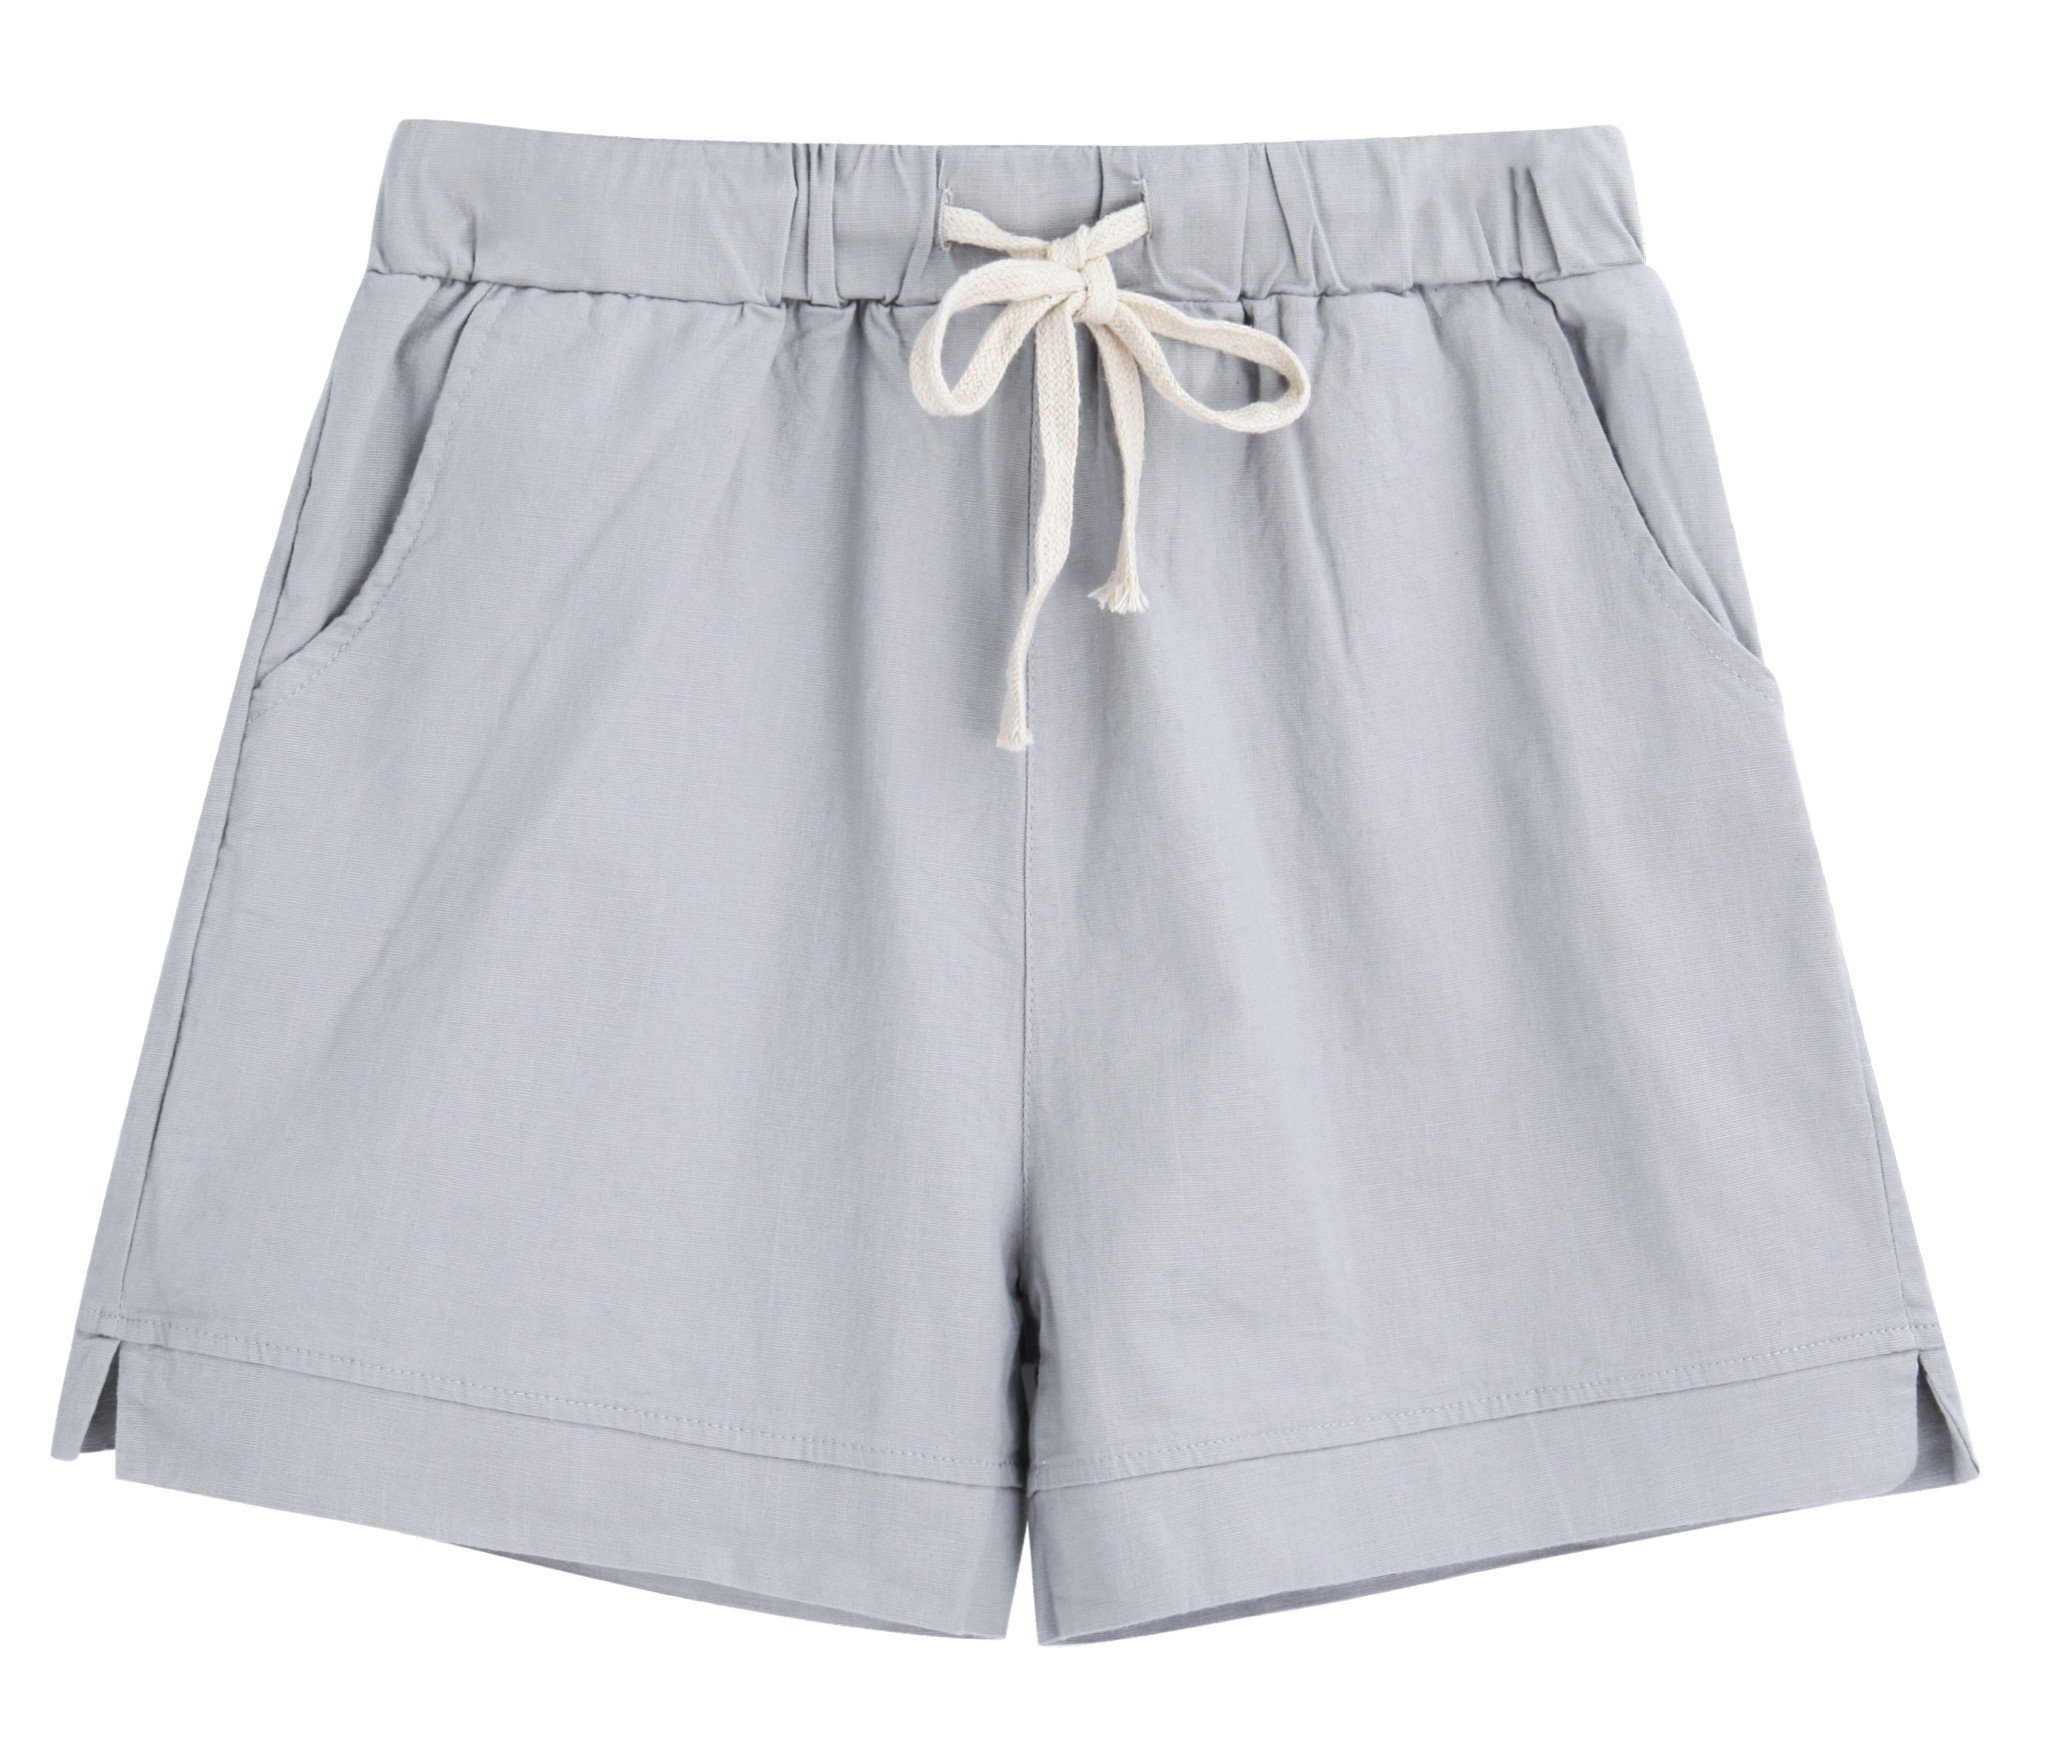 Yknktstc Womens Elastic Waist Cotton Linen Casual Beach Shorts with Drawstring US 4/6 Style 2 Grey